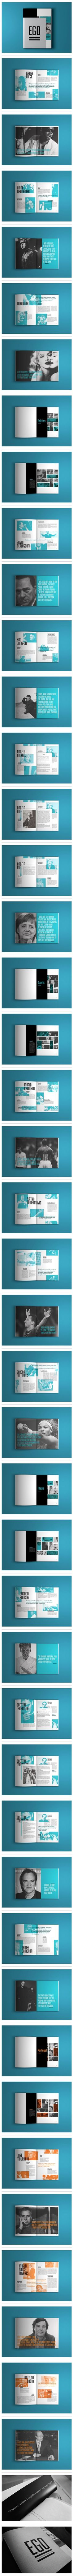 EGO: black & white & turquoise | typography / graphic design: EGO Editorial Design, collaboration David Salgado, Mariana Perfeito |: